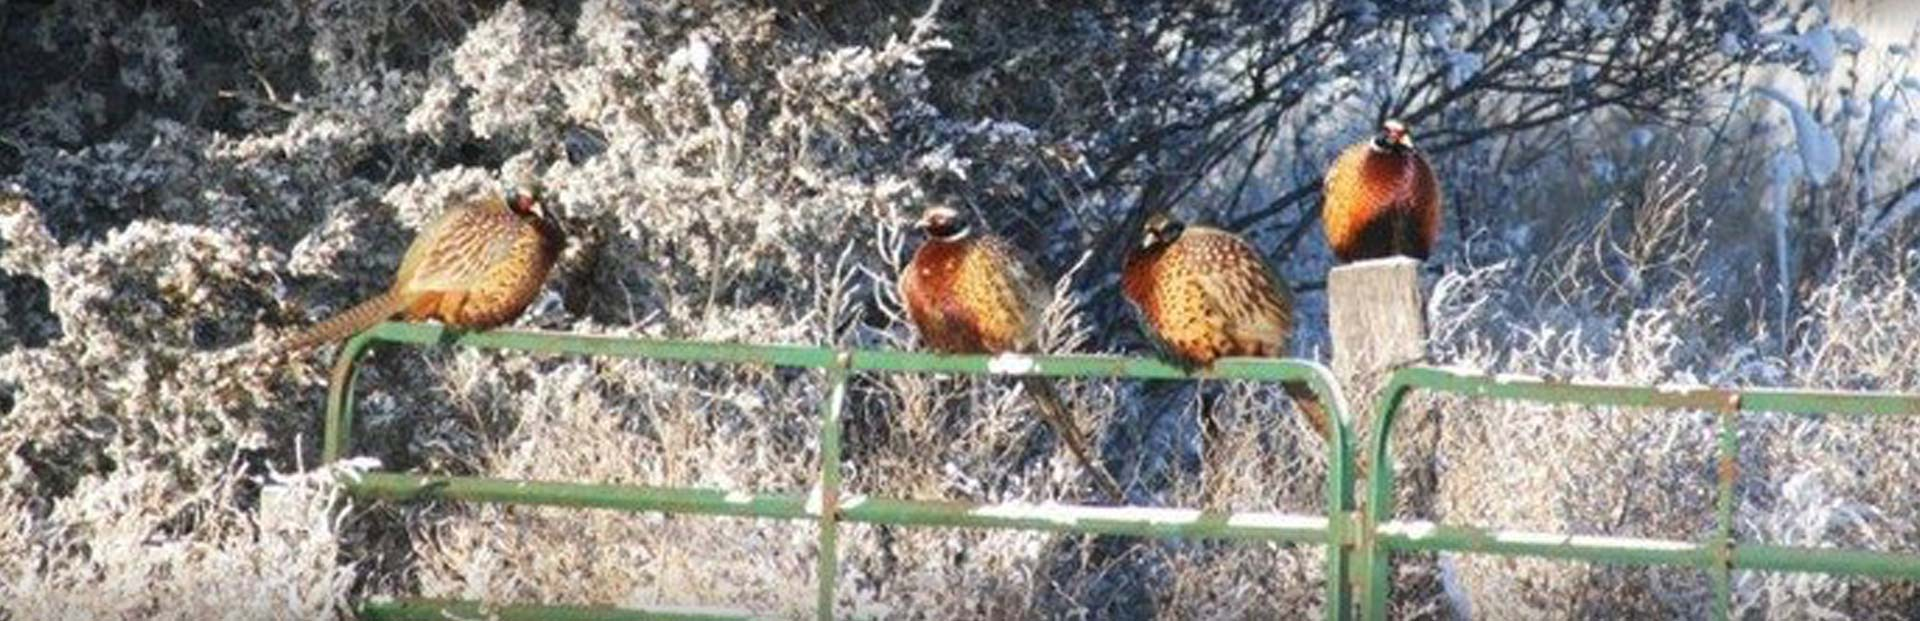 Pheasant City Lodge Videos